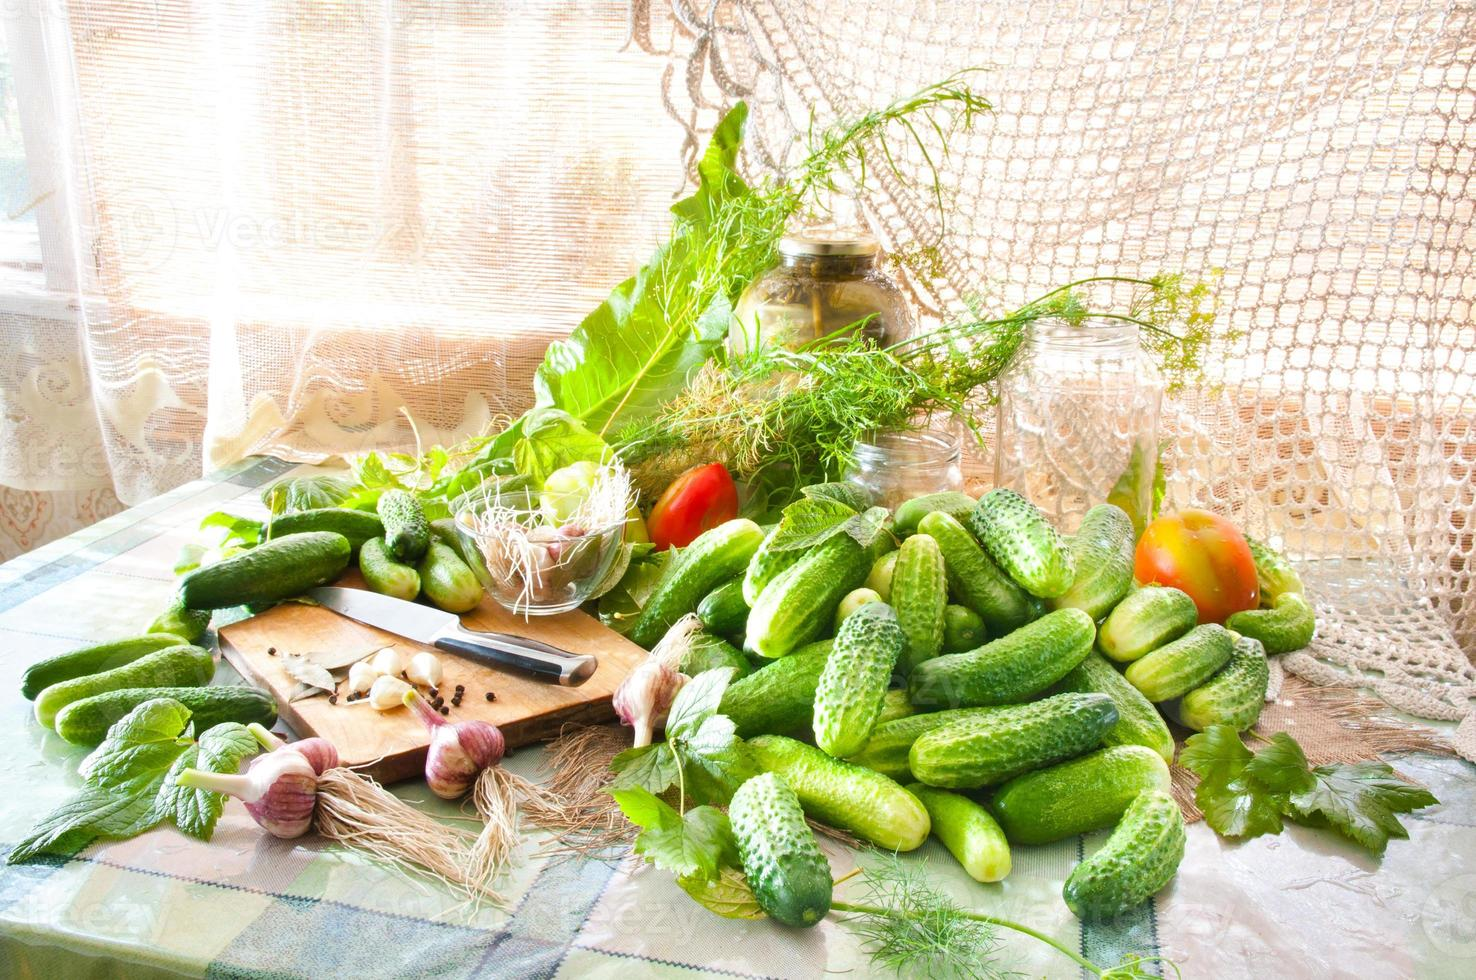 cucumbers on the table with spices photo